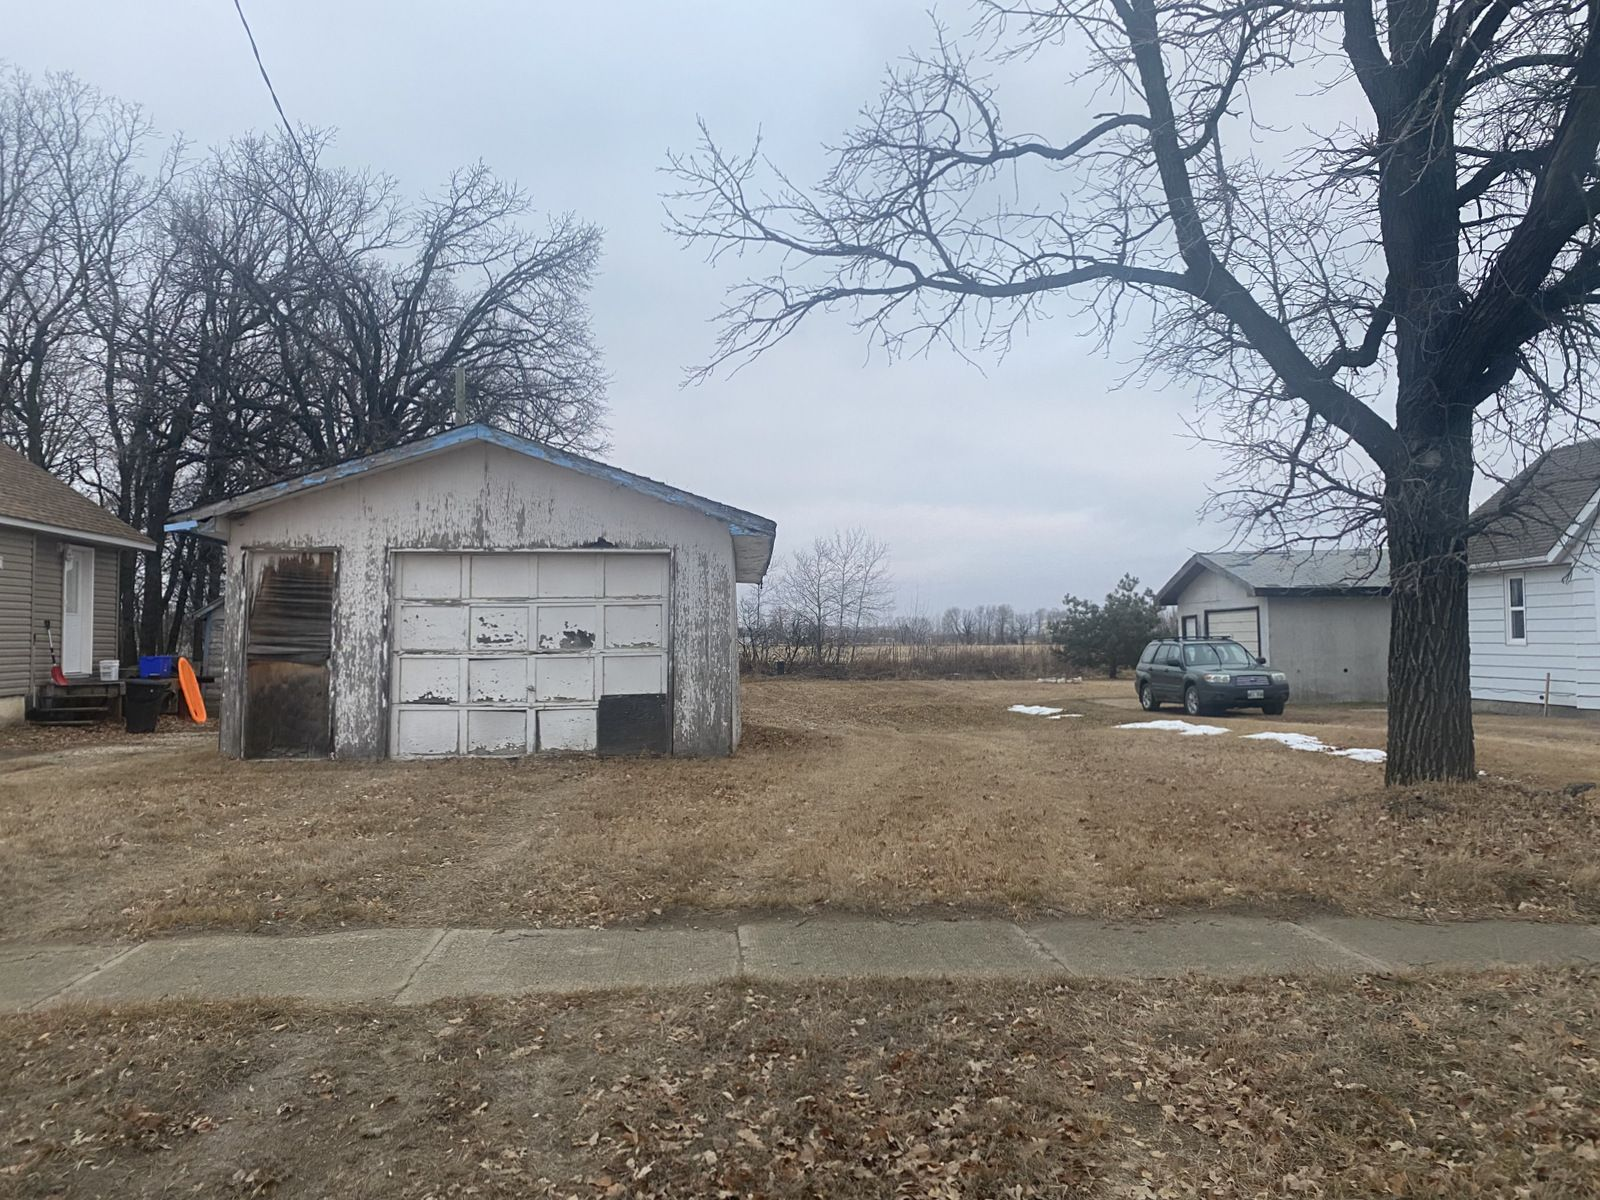 Main Photo: 154 1st Street NW in St Claude: Vacant Land for sale : MLS®# 202029213